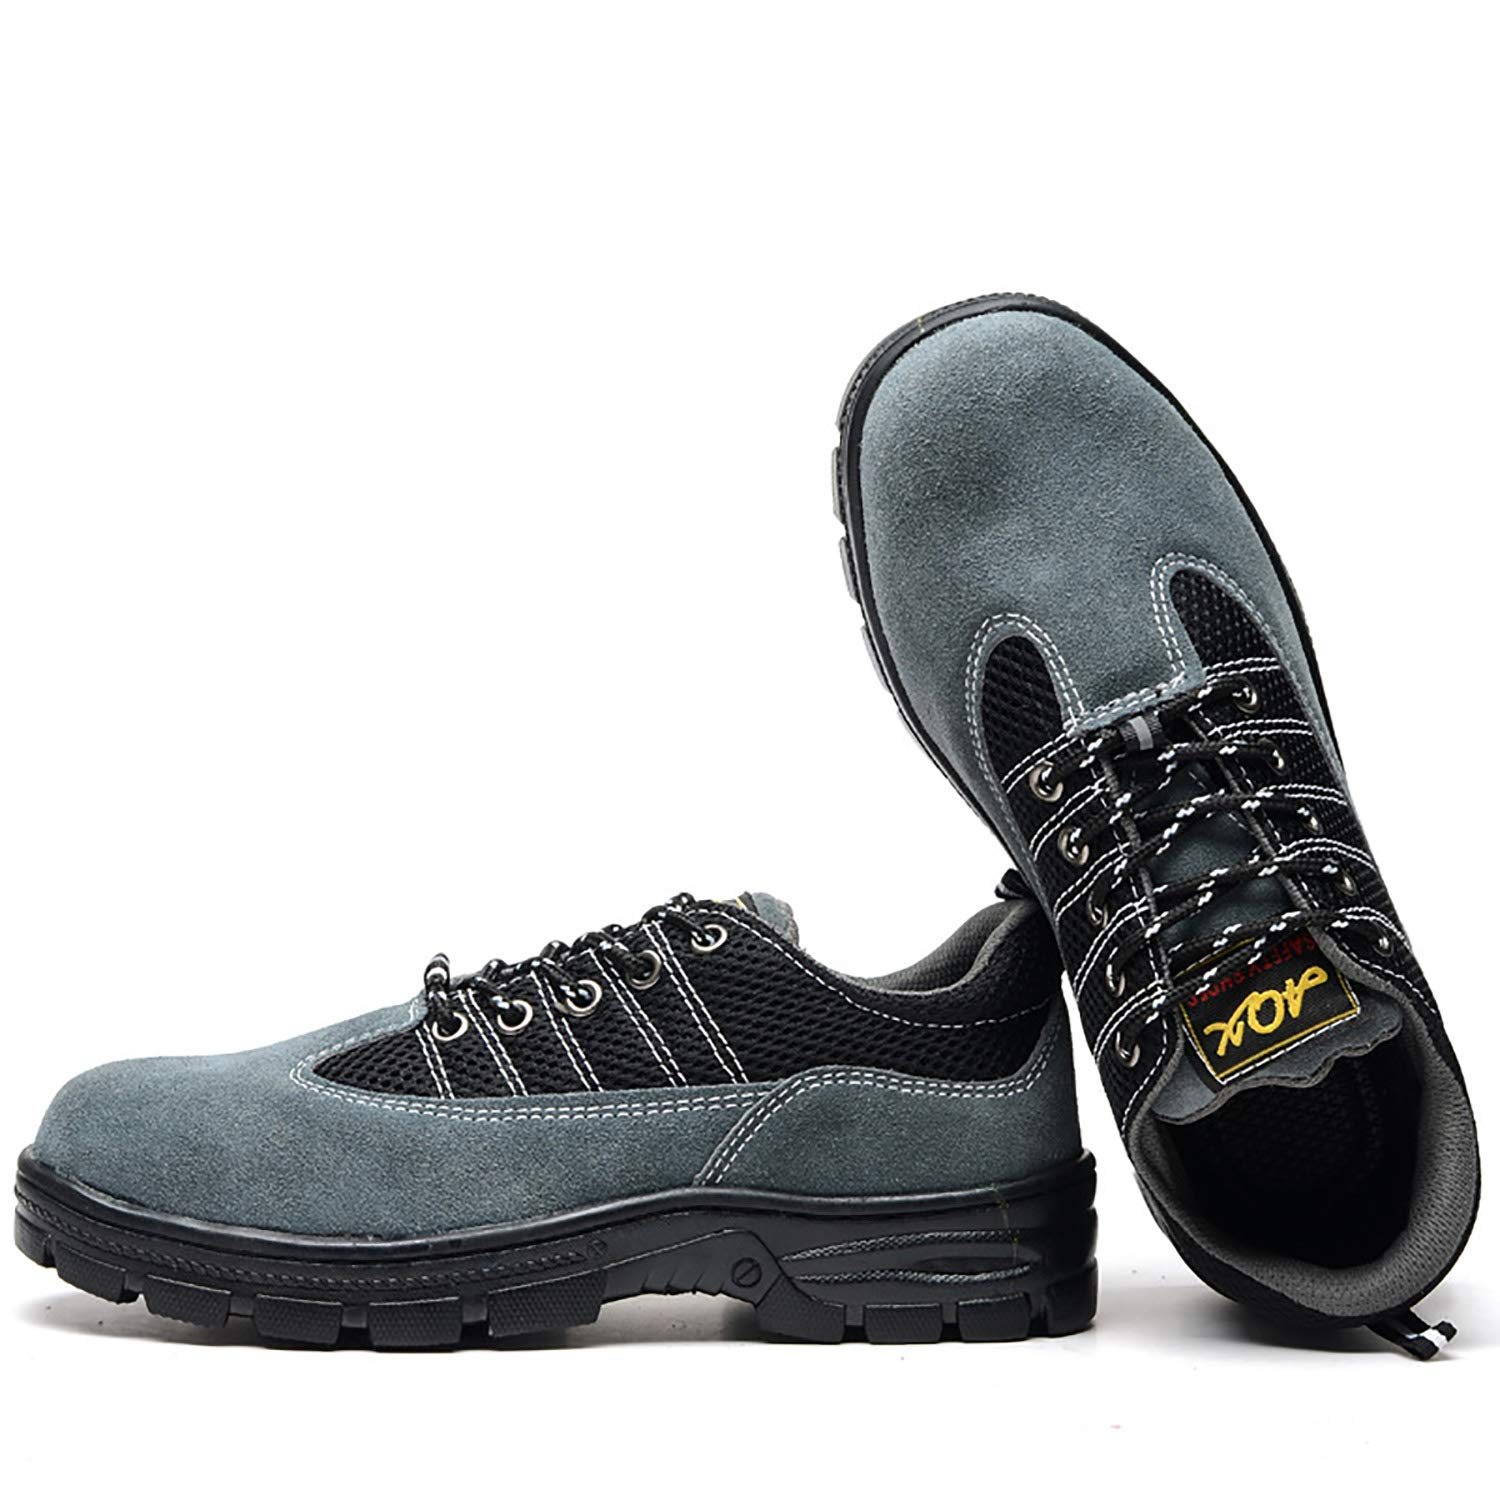 Webb Perkin Mens Cool Work Boot Breathable Work Shoes